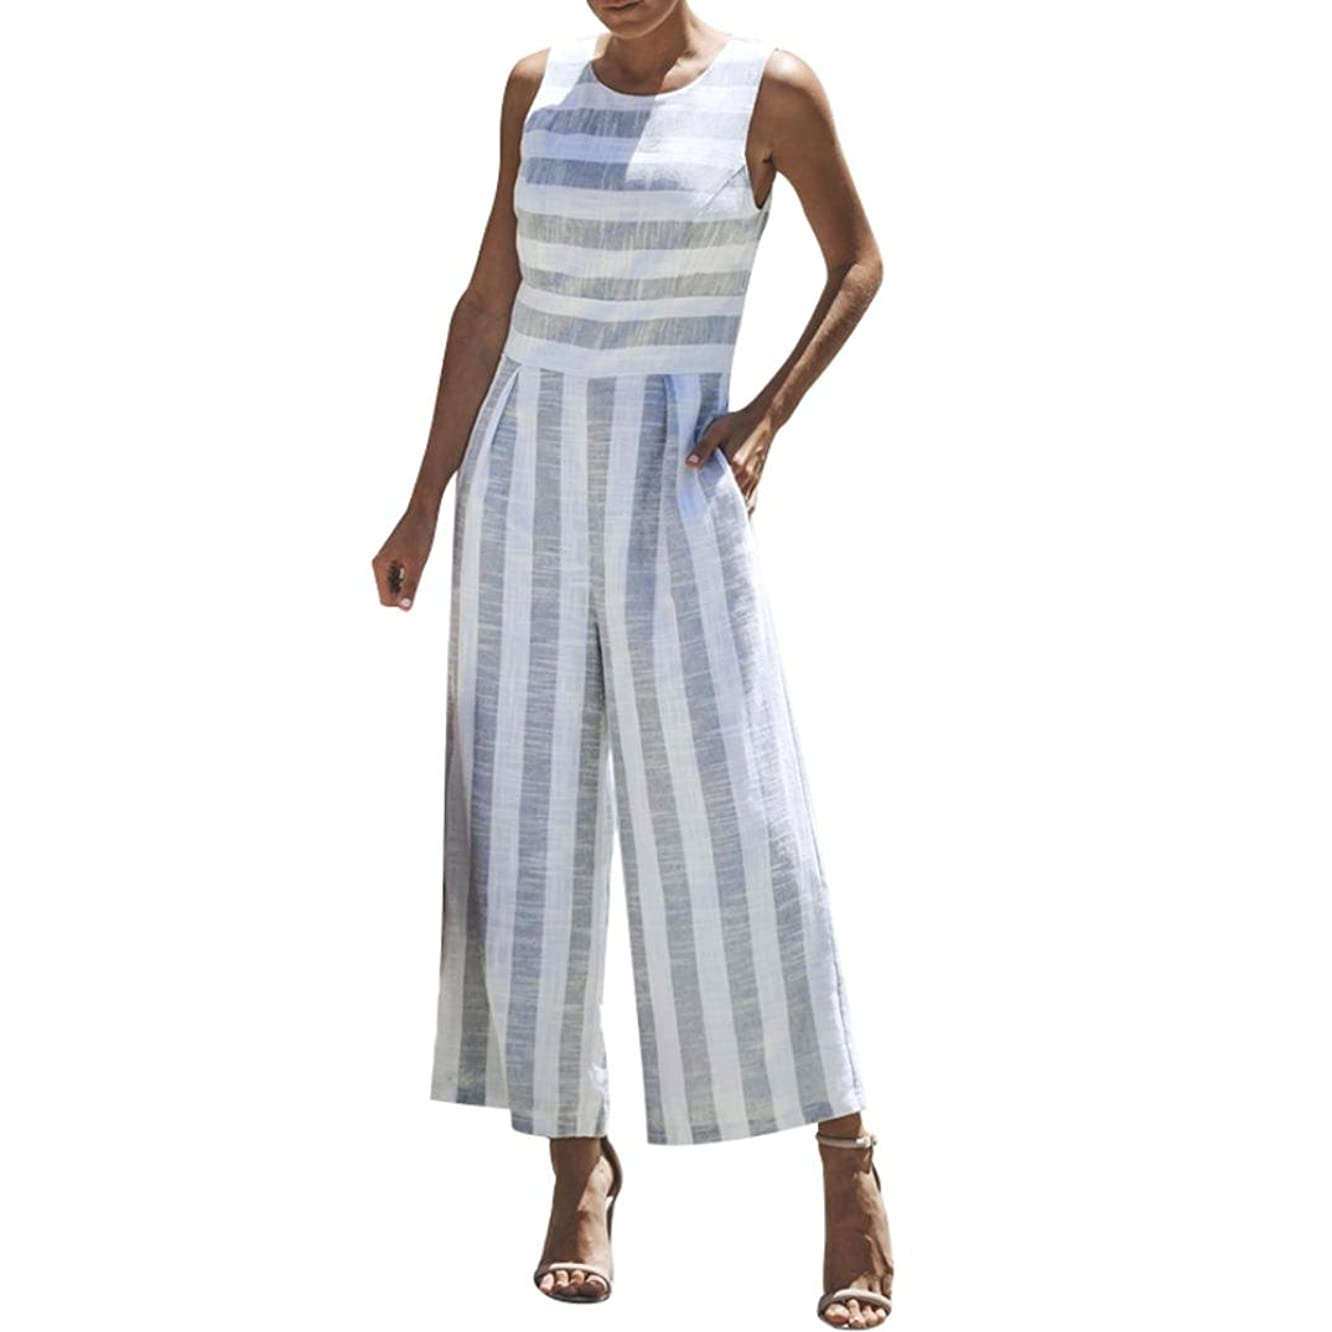 lotus.flower Women Sleeveless Striped Jumpsuit Casual Clubwear Wide Leg Pants Outfit(M, White)